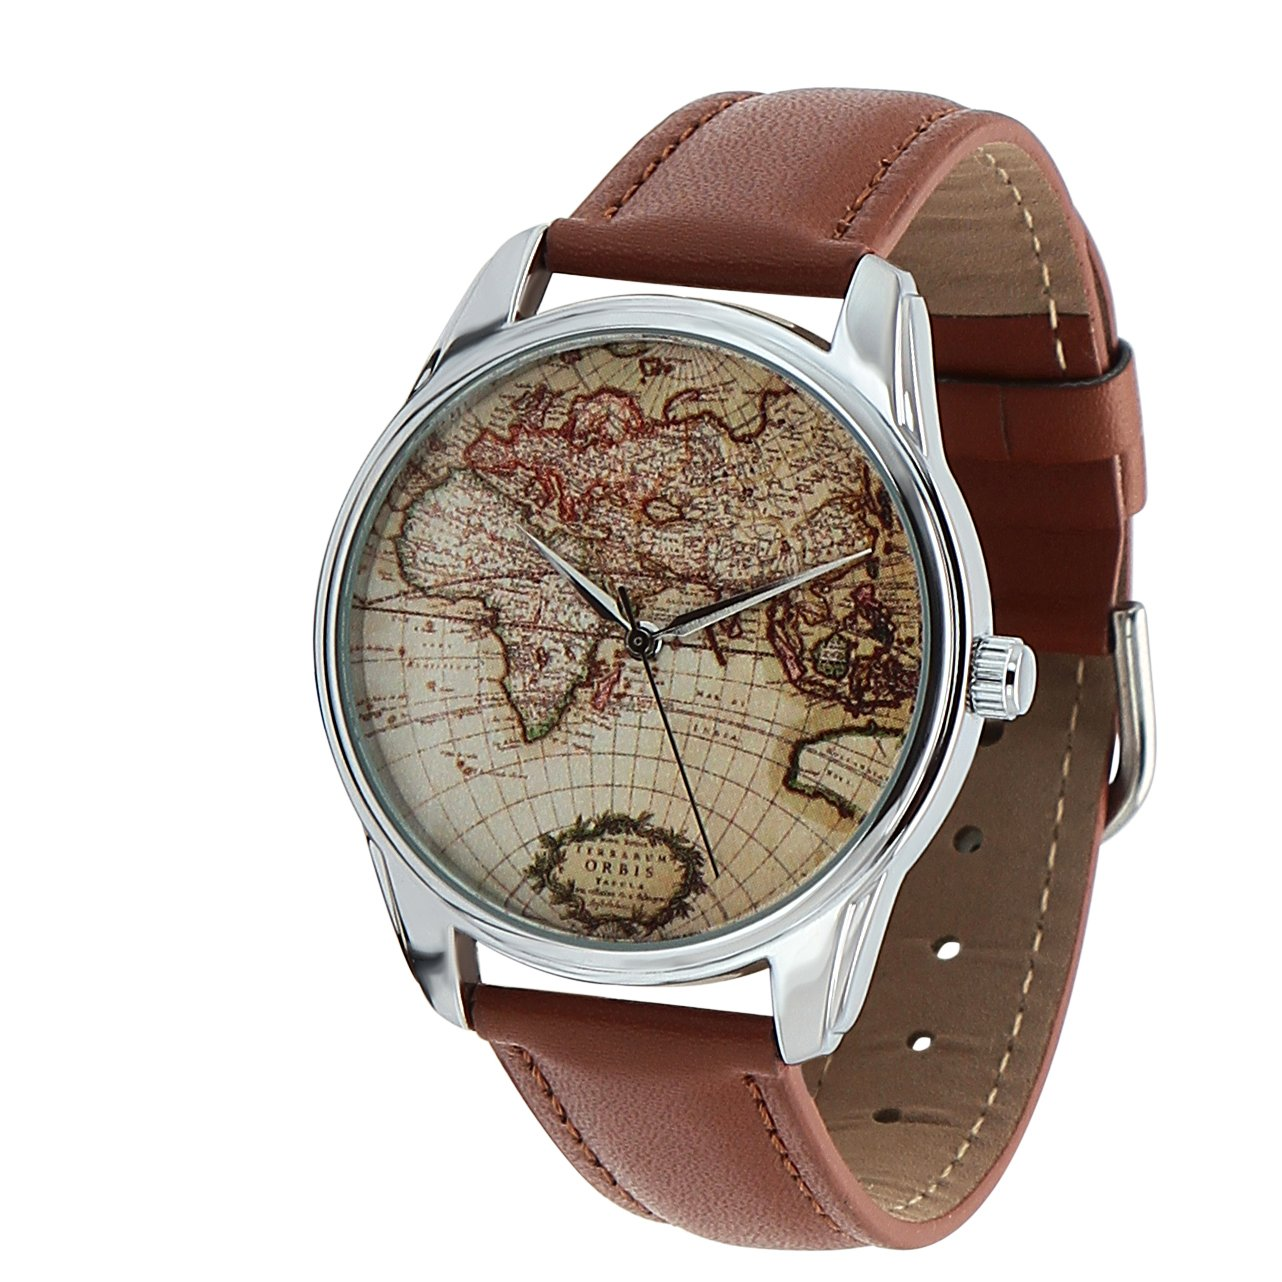 Watch With World Map Amazon.com: World Map Watch, Brown Map Wrist Watch, Travel Map